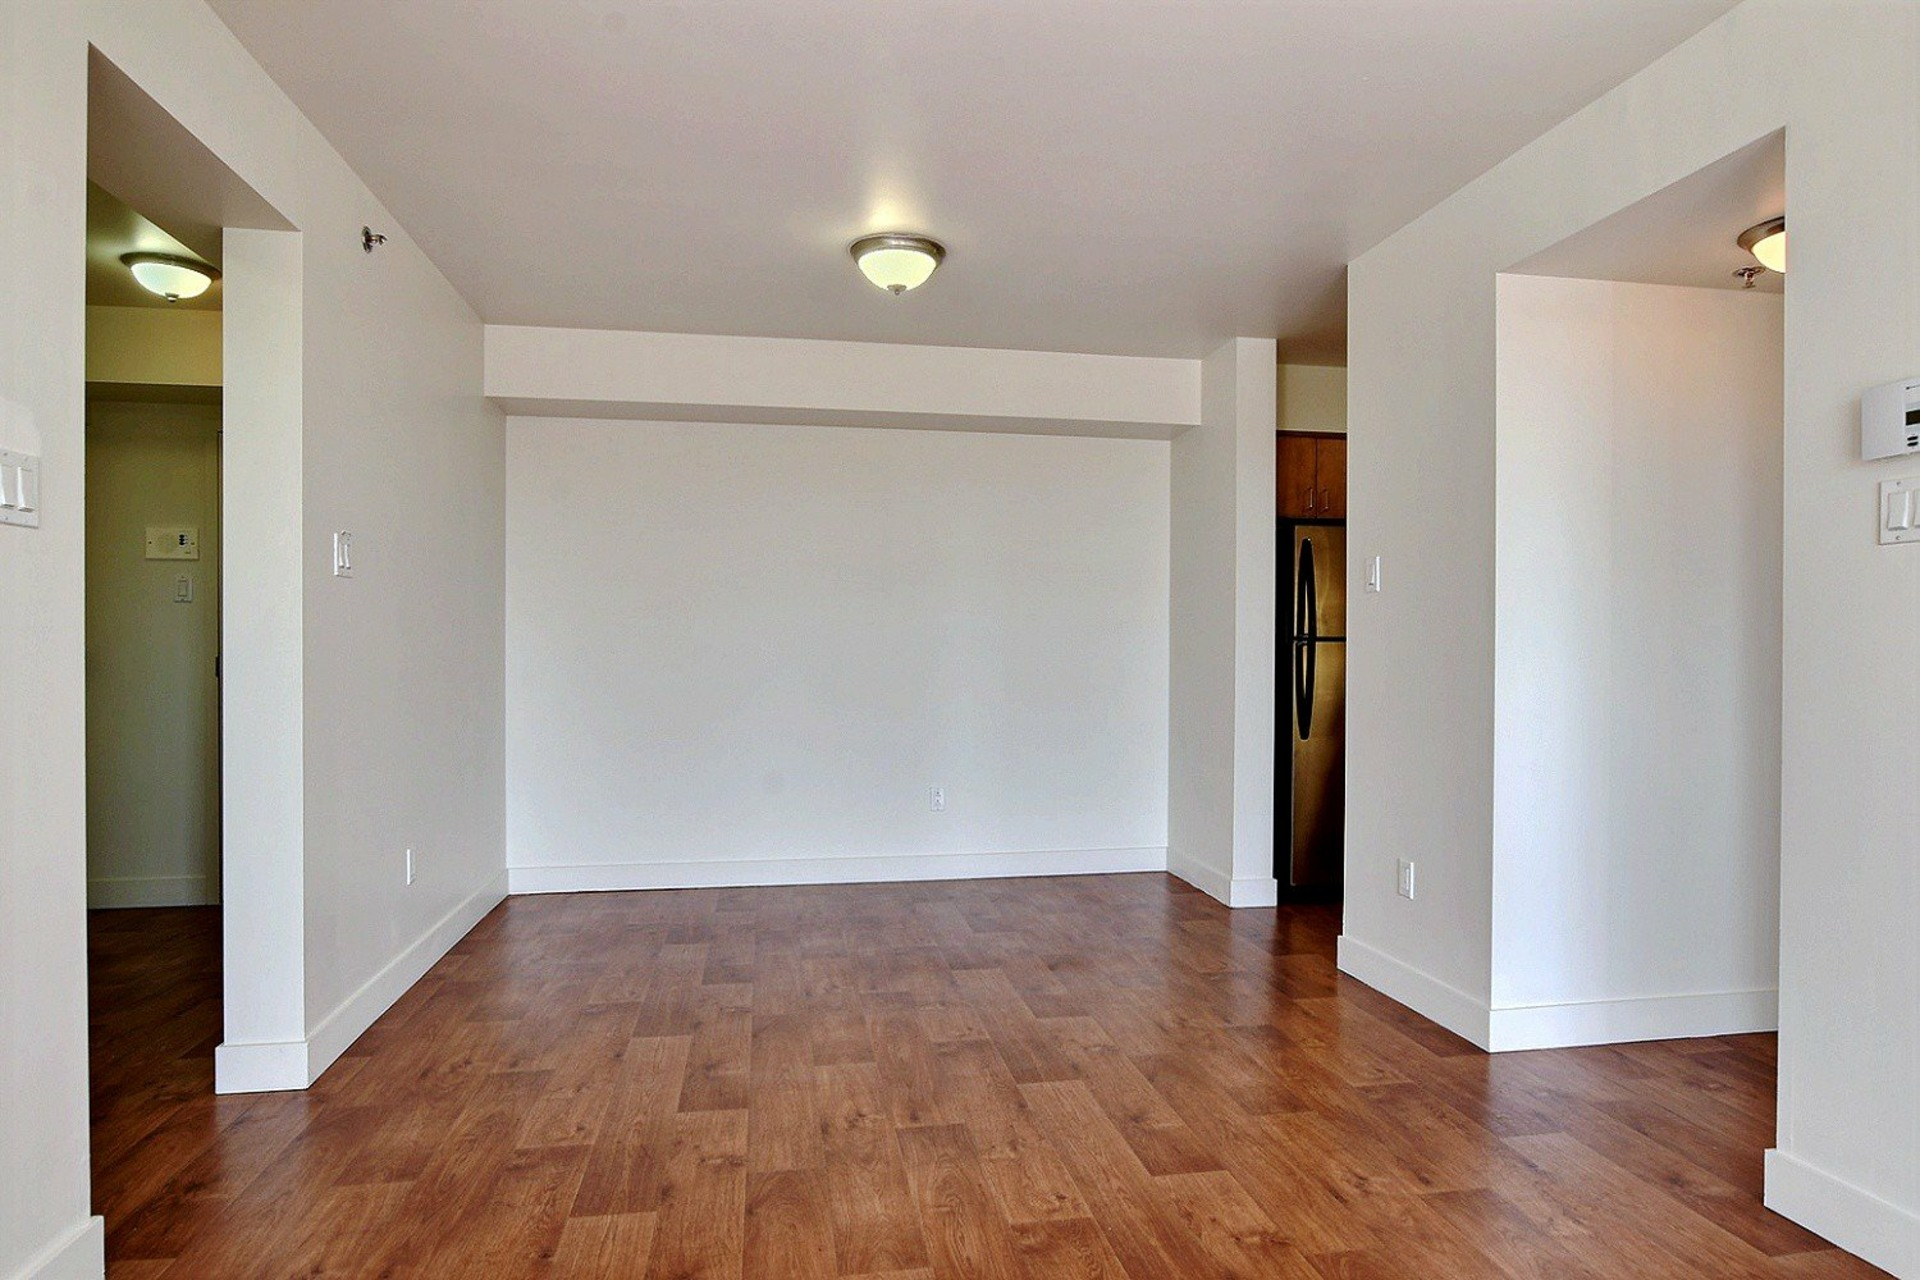 image 7 - Apartment For rent Brossard - 7 rooms